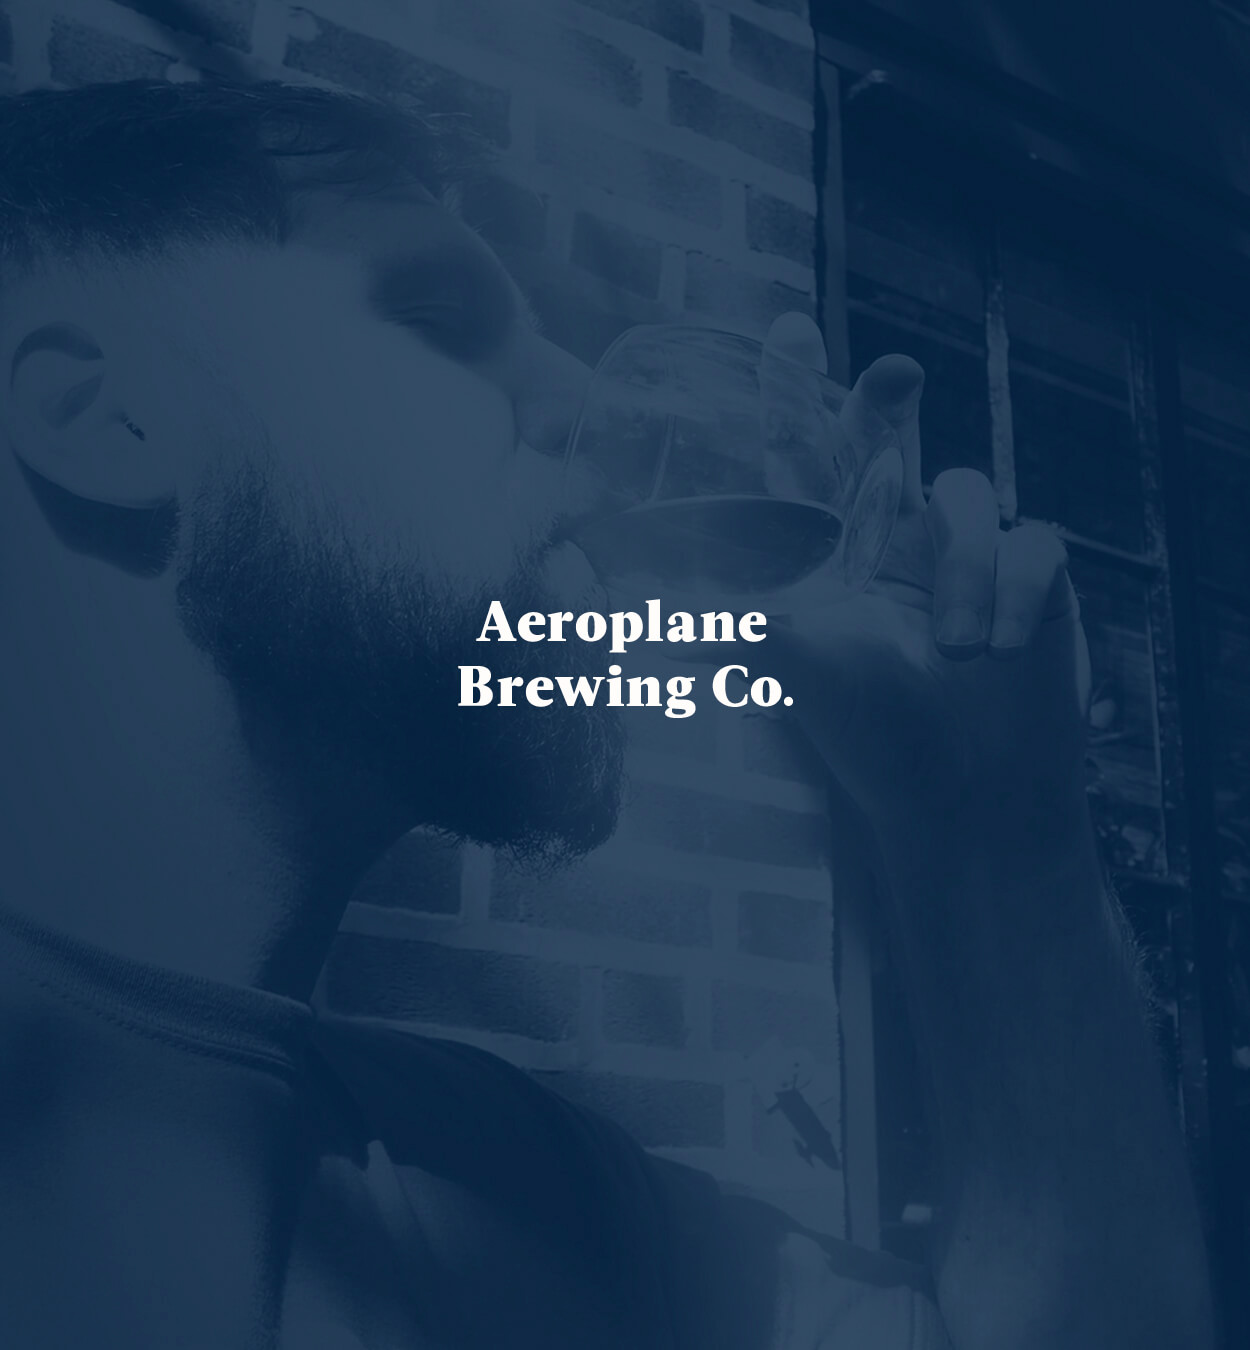 Aeroplane Brewing